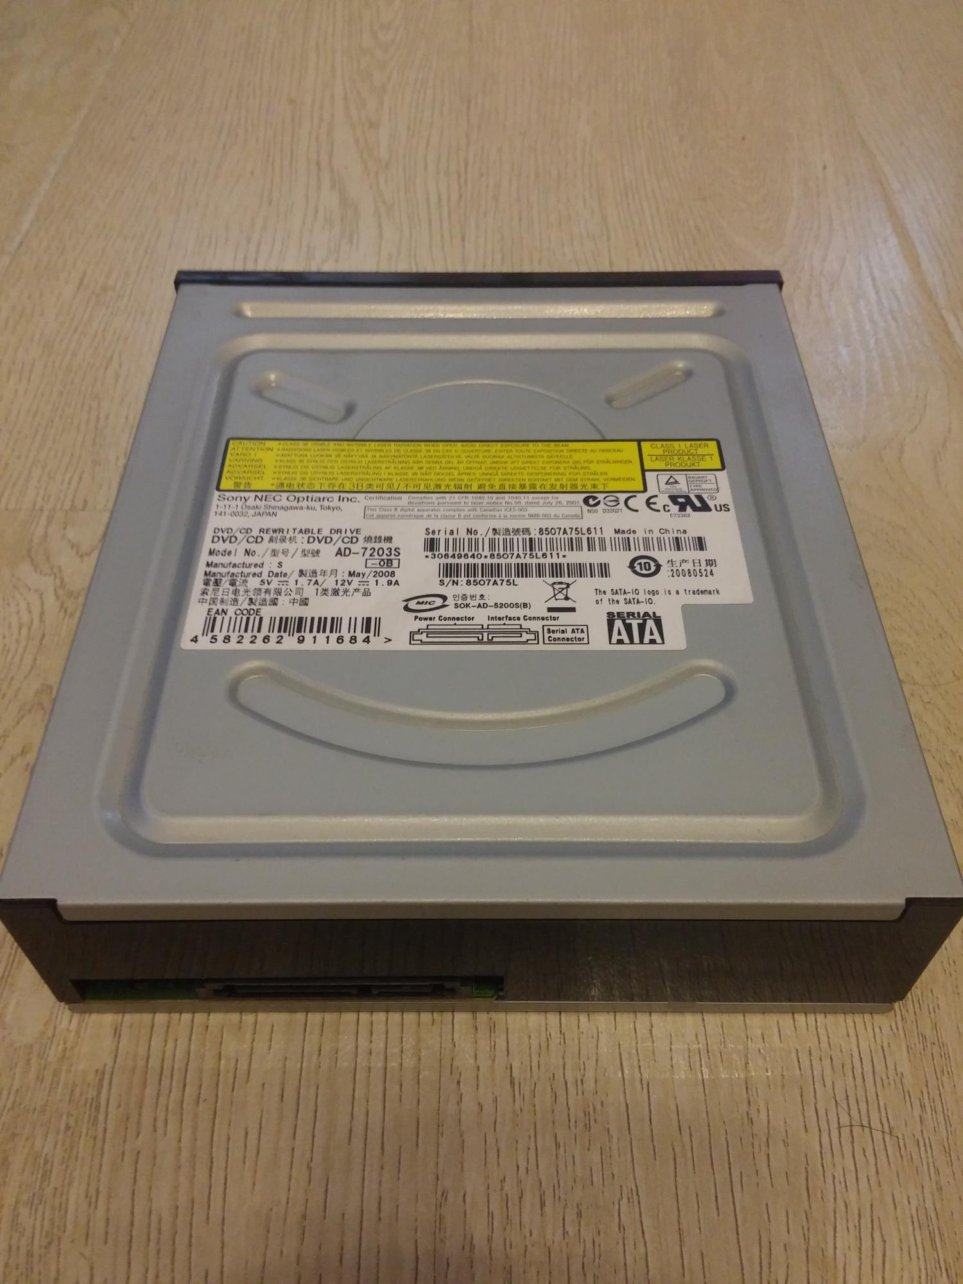 OPTIARC DVD RW AD-7203A ATA DEVICE WINDOWS 8.1 DRIVERS DOWNLOAD